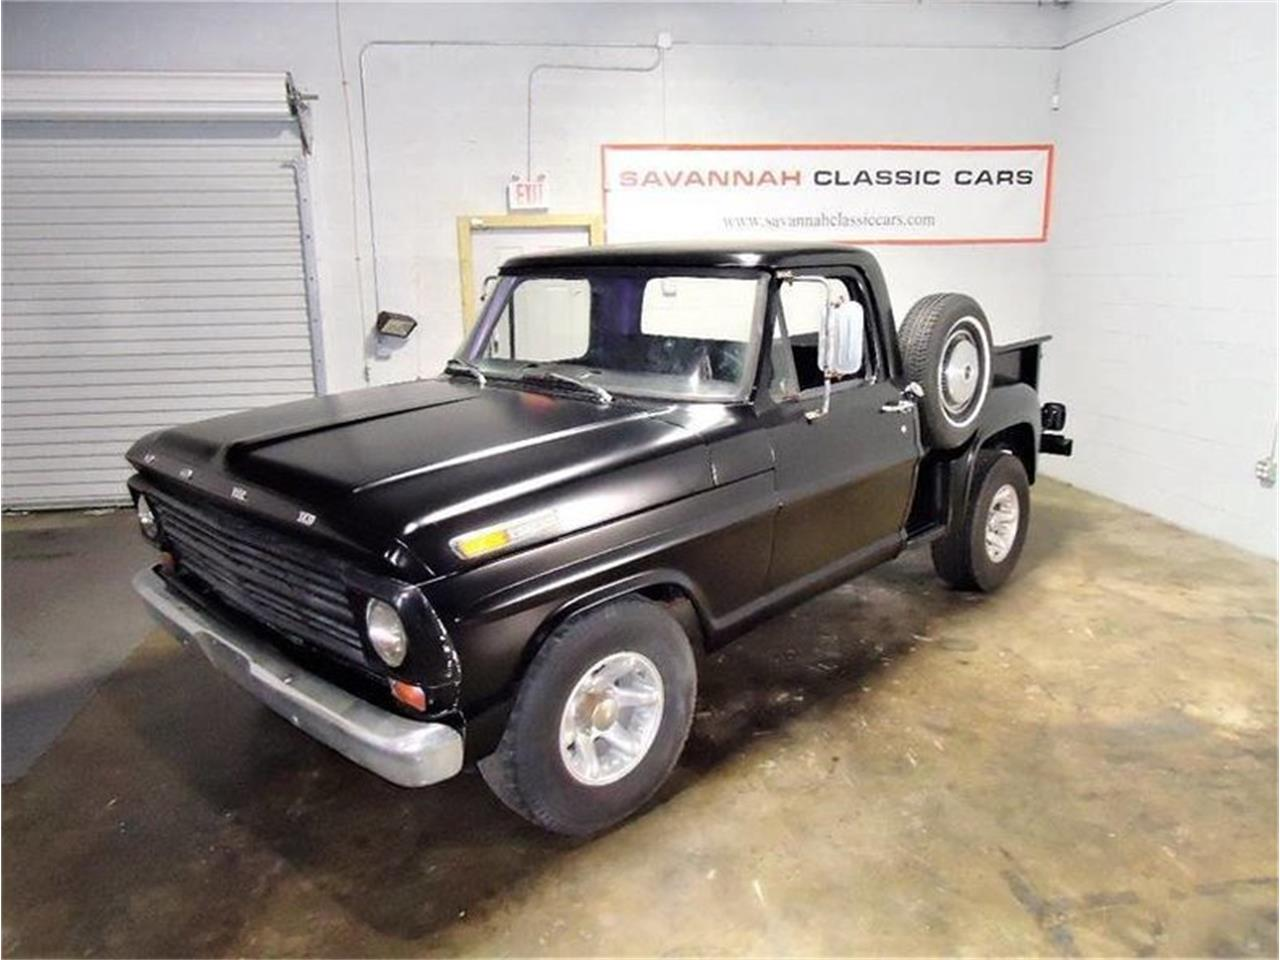 Cars For Sale Savannah Ga: 1968 Ford F100 For Sale